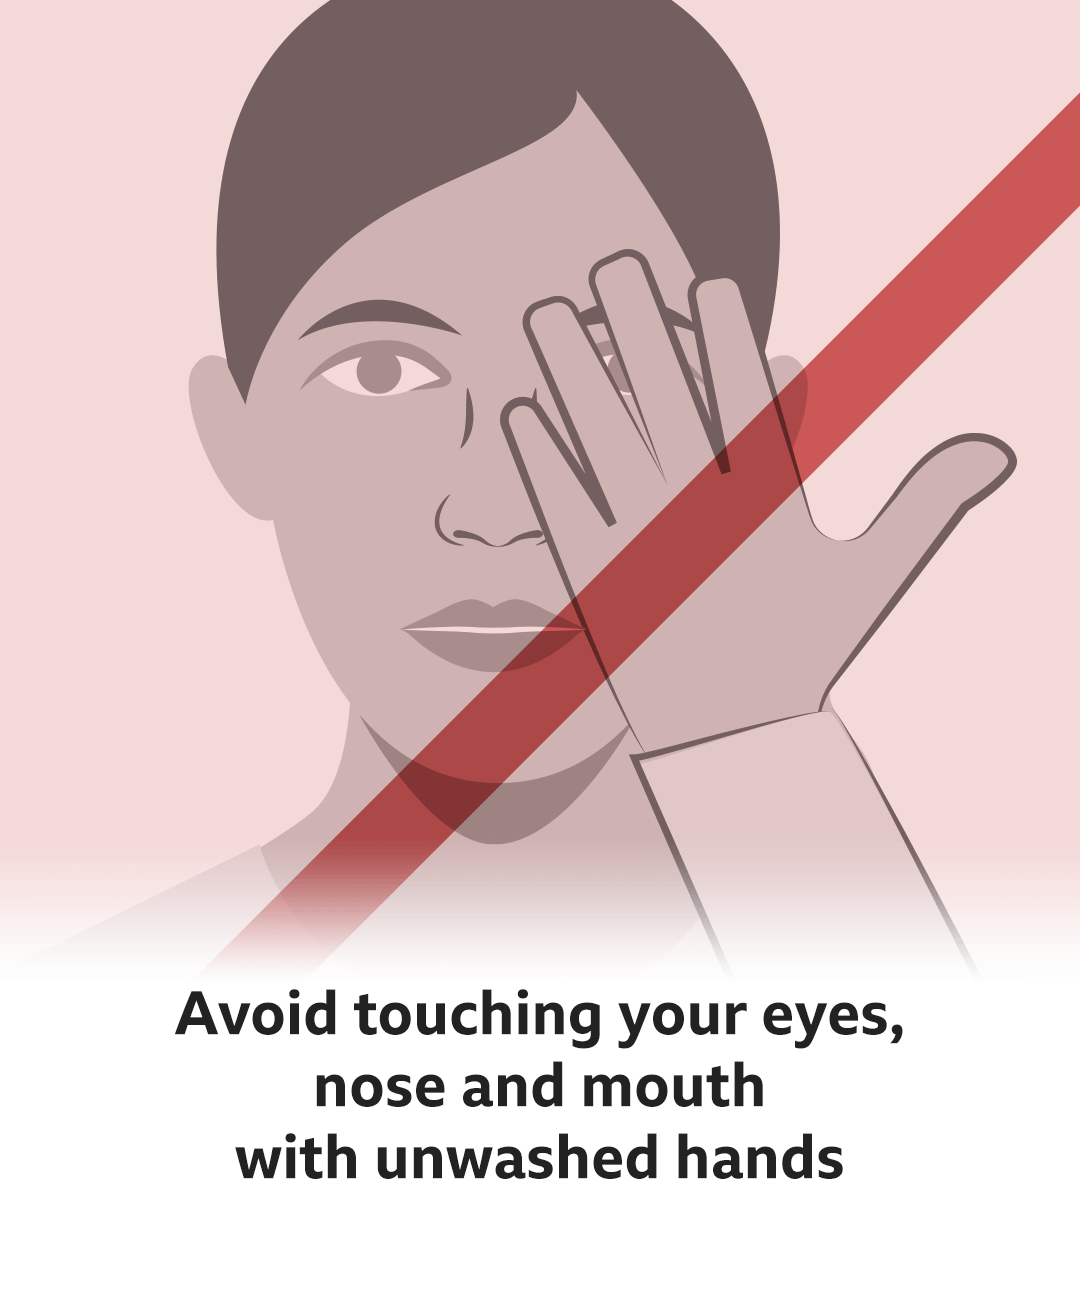 Avoid touching your eyes, mouth and nose with unwashed hands